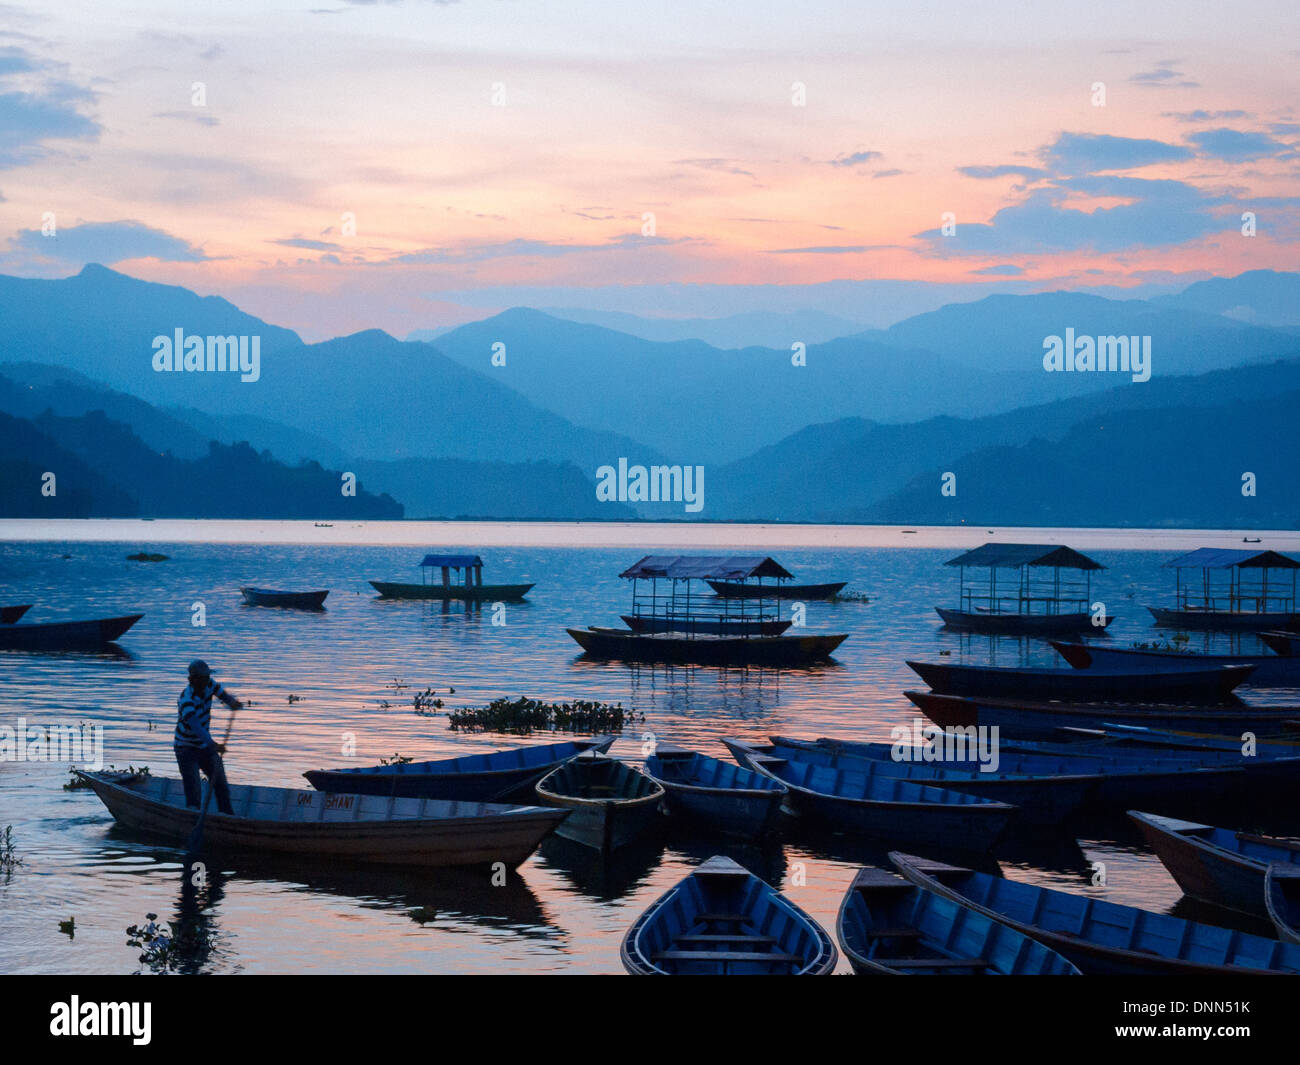 Boats on Fewa Tal at dusk, Pokhara, Nepal - Stock Image